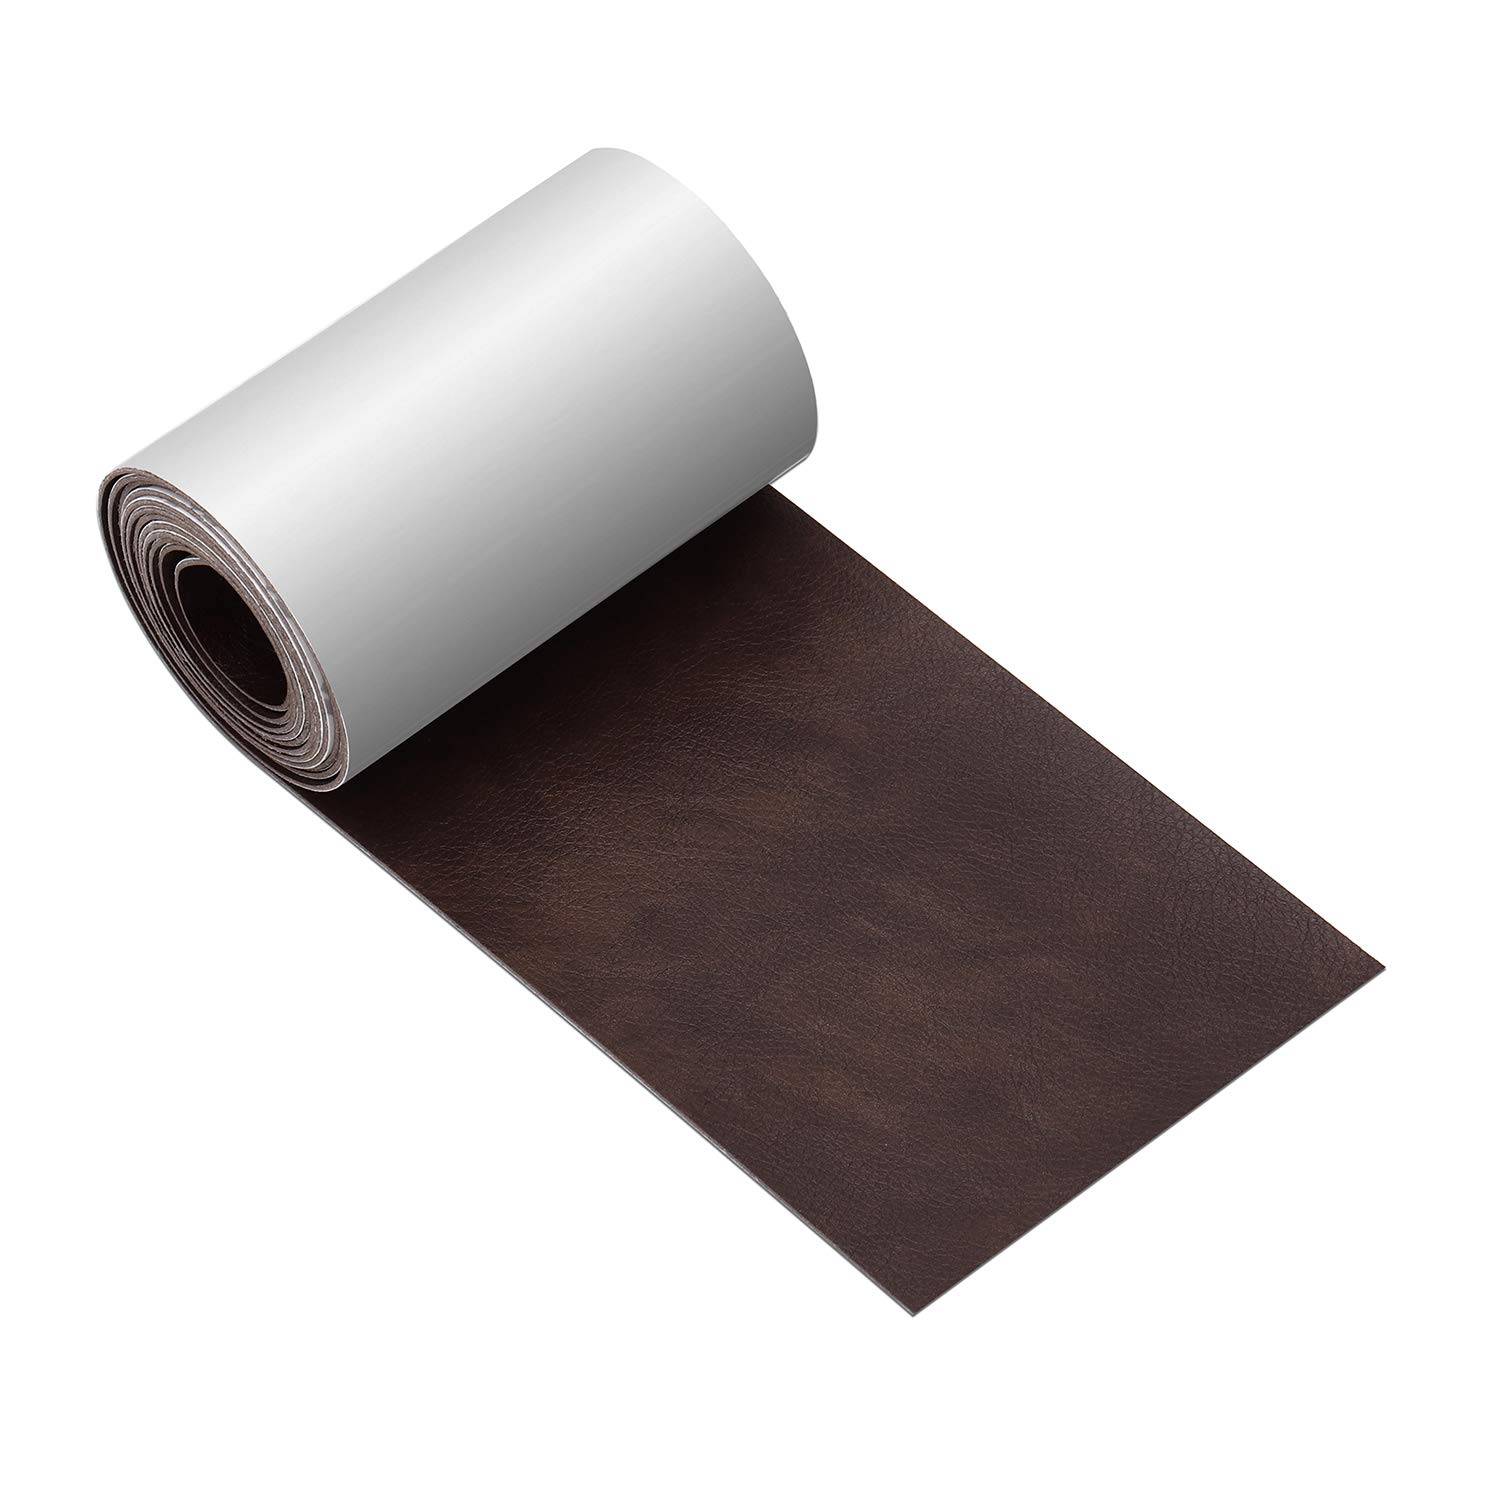 Fantastic Leather Tape 3X60 Inch Self Adhesive Genuine Leather Repair Patch For Sofas Couch Furniture Drivers Seat Dark Brown Unemploymentrelief Wooden Chair Designs For Living Room Unemploymentrelieforg